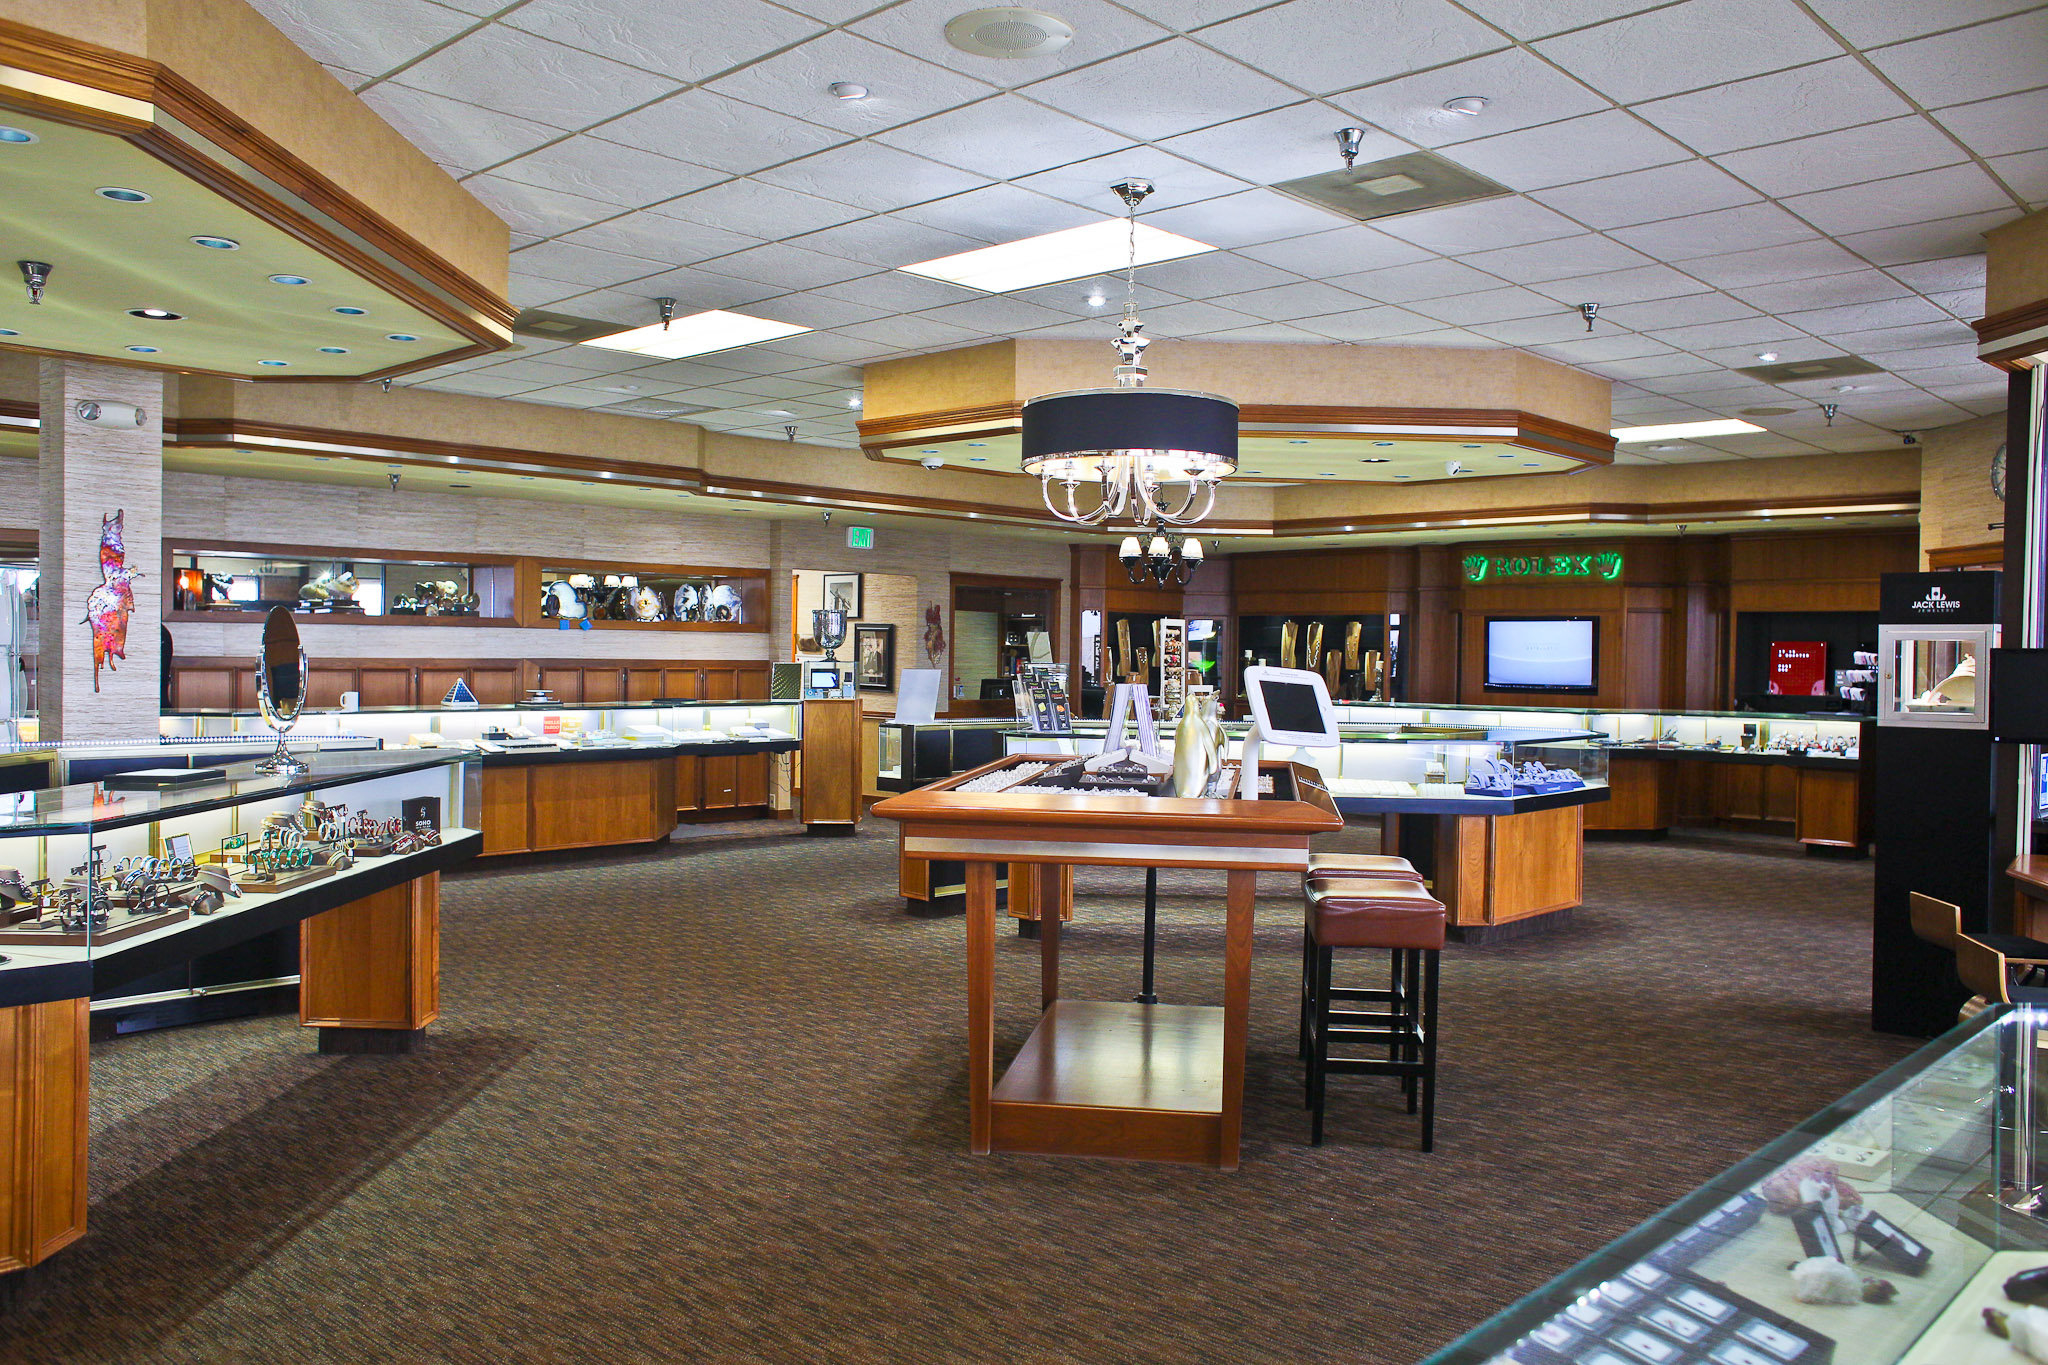 jack lewis jewelers coupons near me in bloomington 8coupons